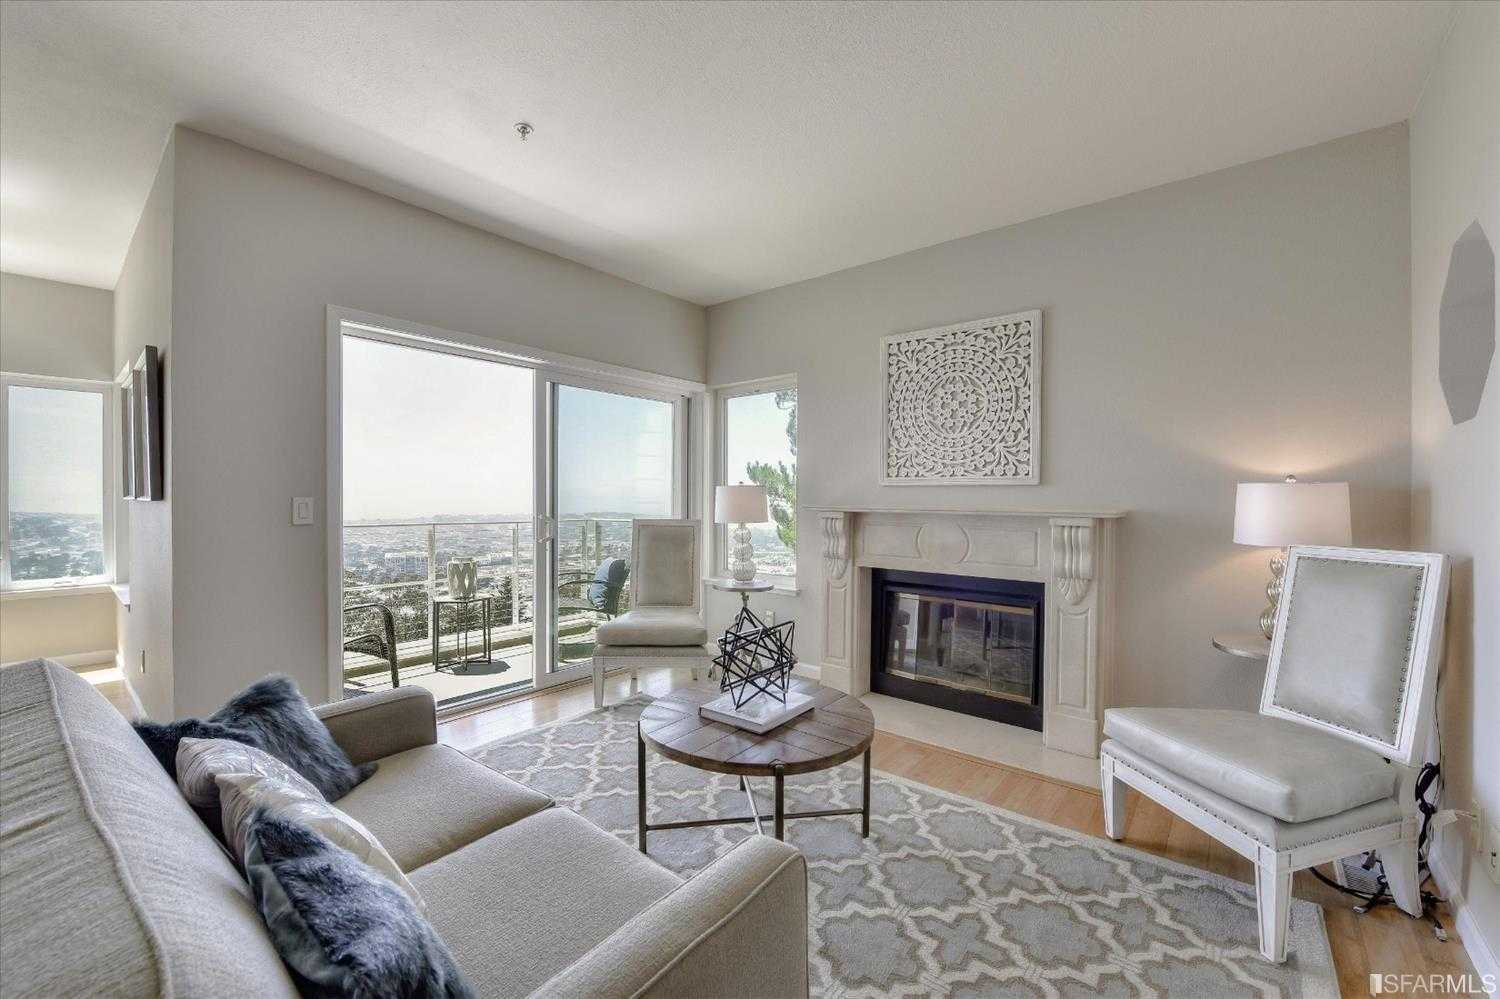 $895,000 - 3Br/3Ba -  for Sale in Daly City